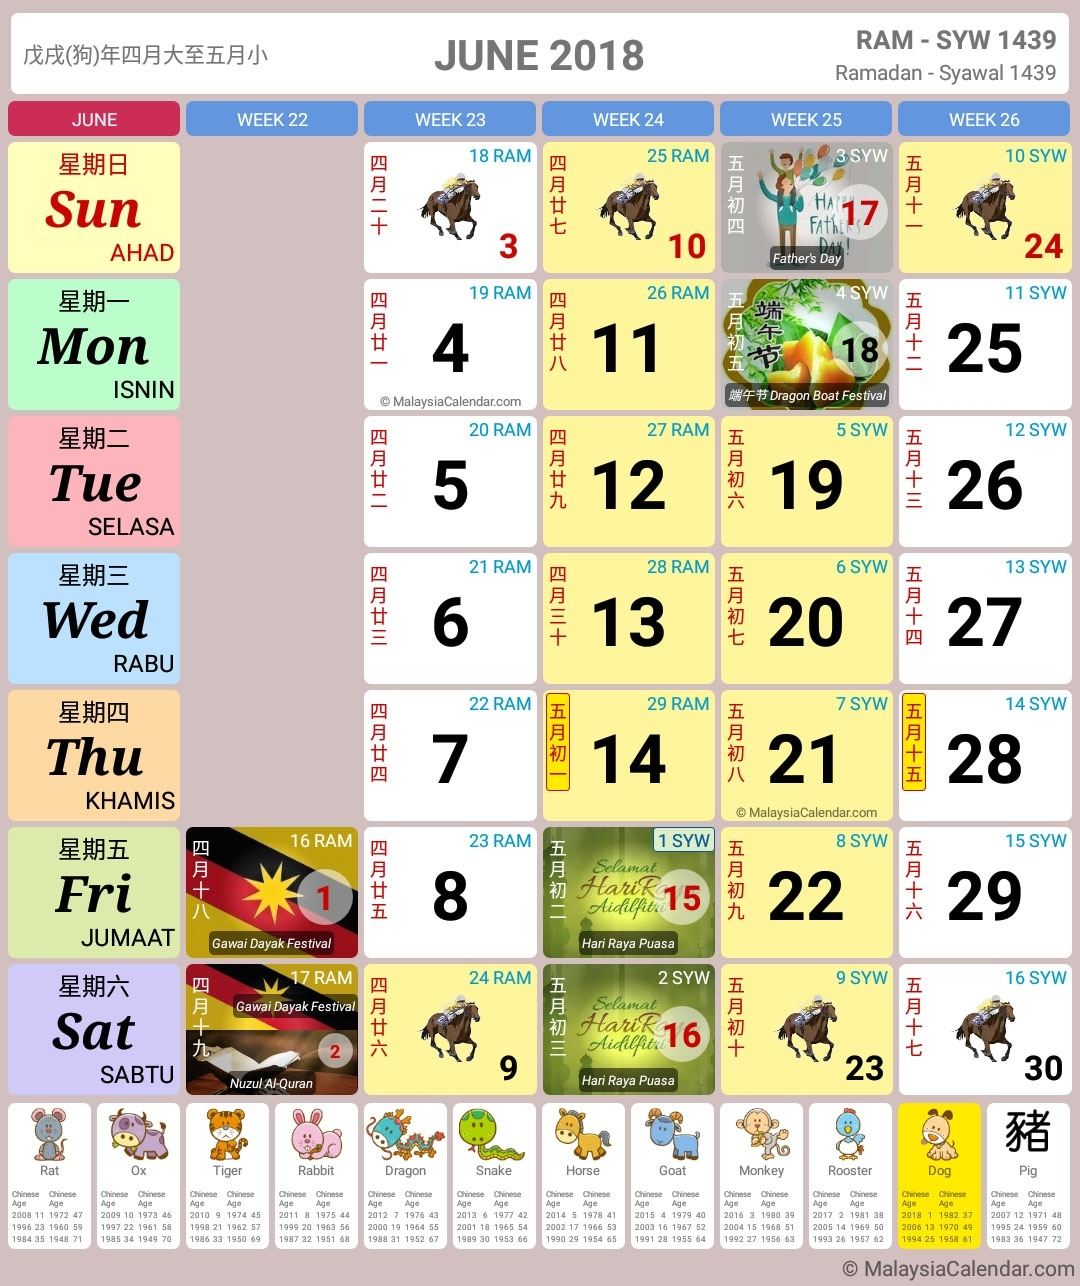 Kalendar Kuda April 2020 | Calendar Template Information inside Calender Kuda 2020